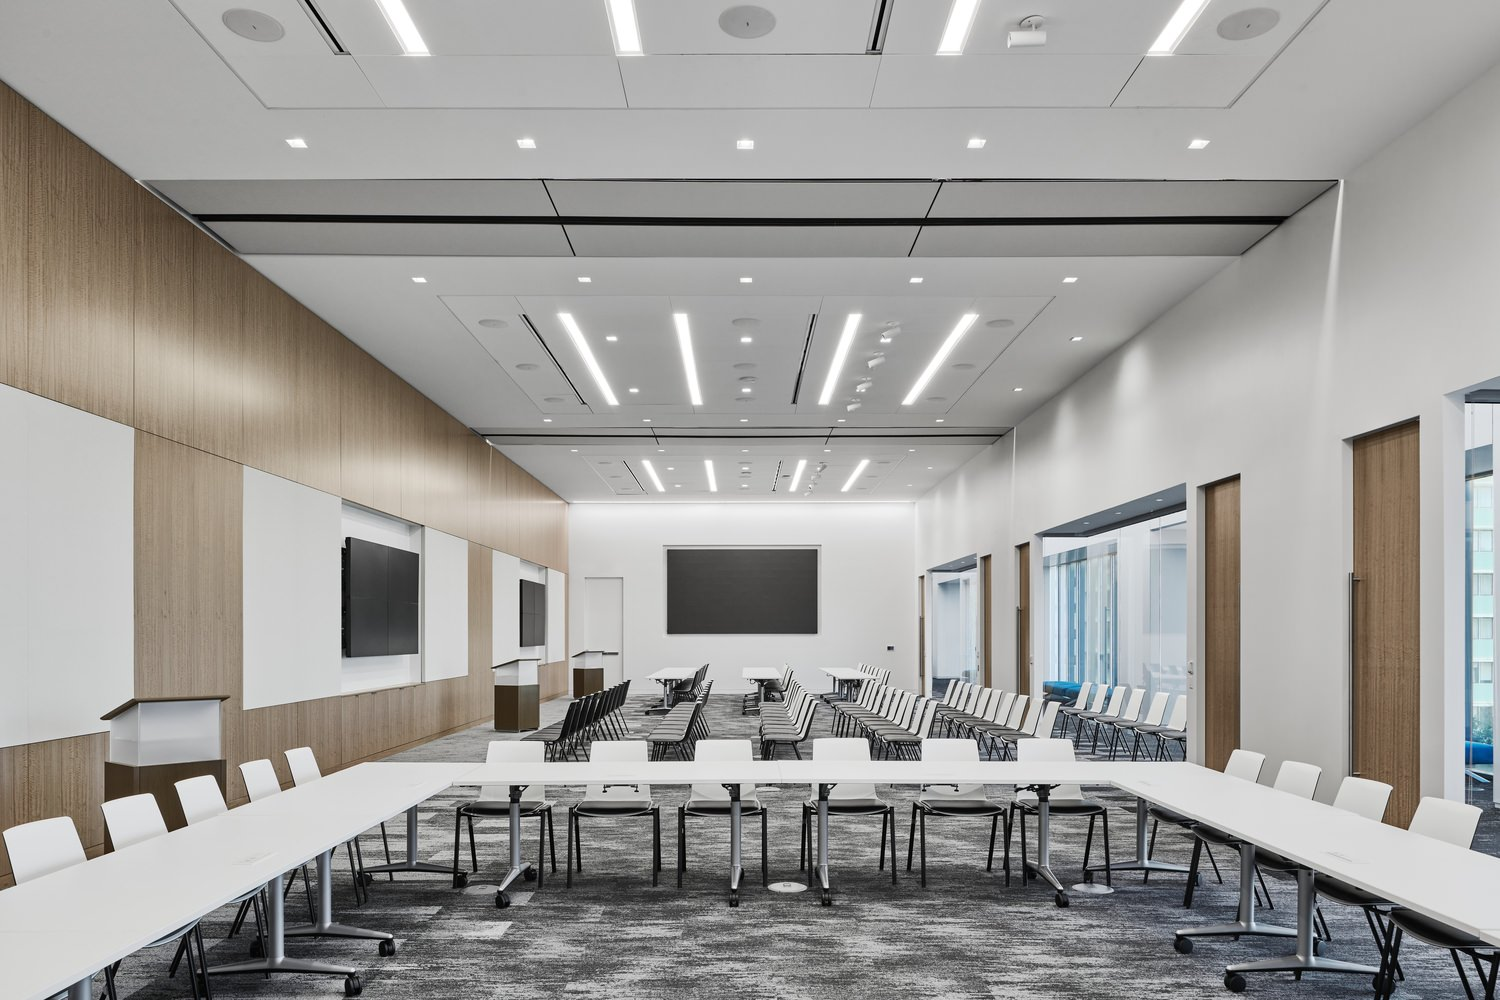 A large conference room in an office that has large desks with a lot of chairs around it.